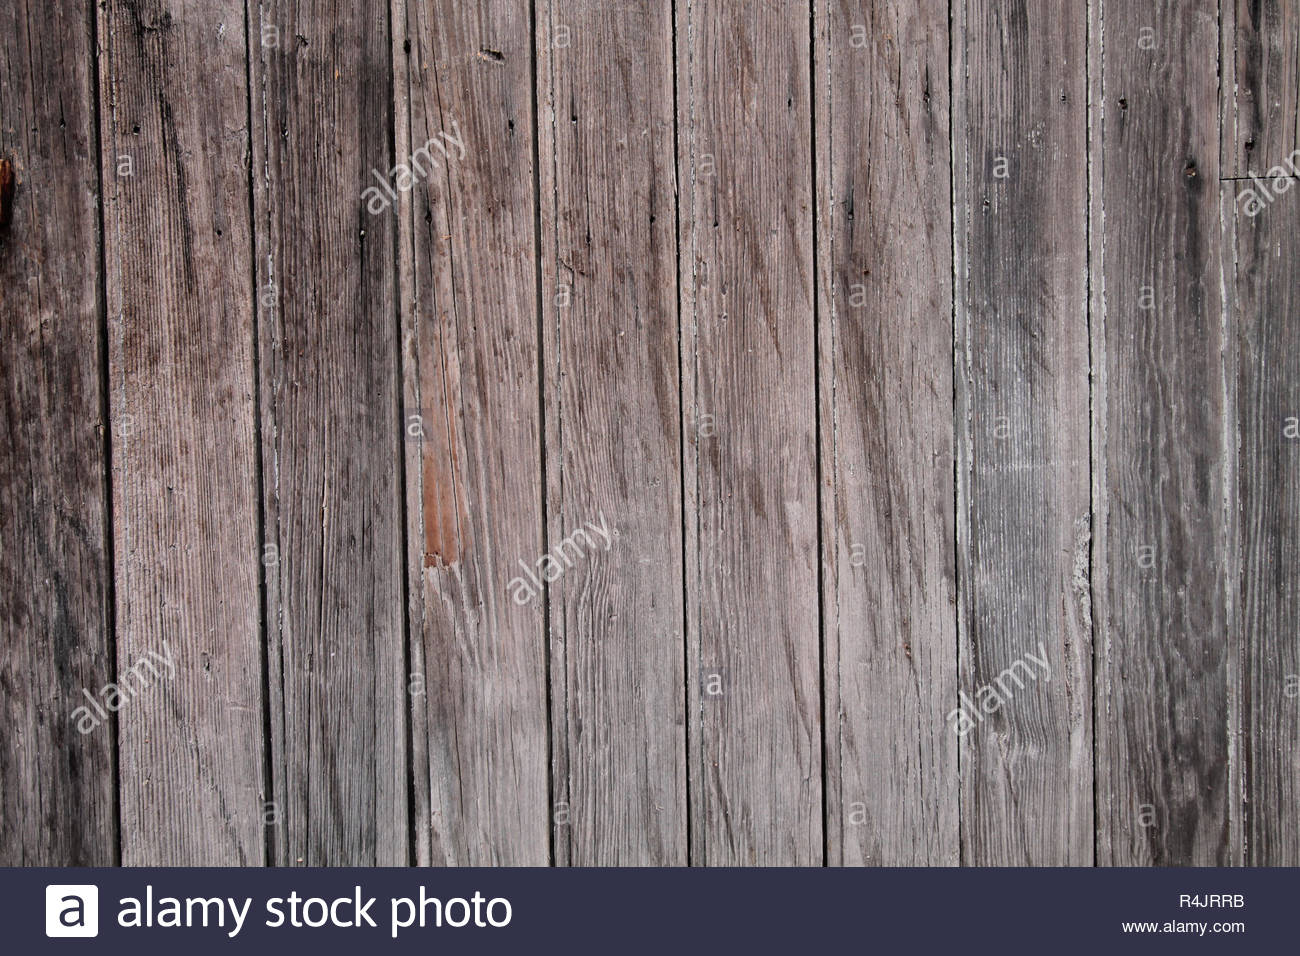 Old brown wooden planks texture background. - Stock Image